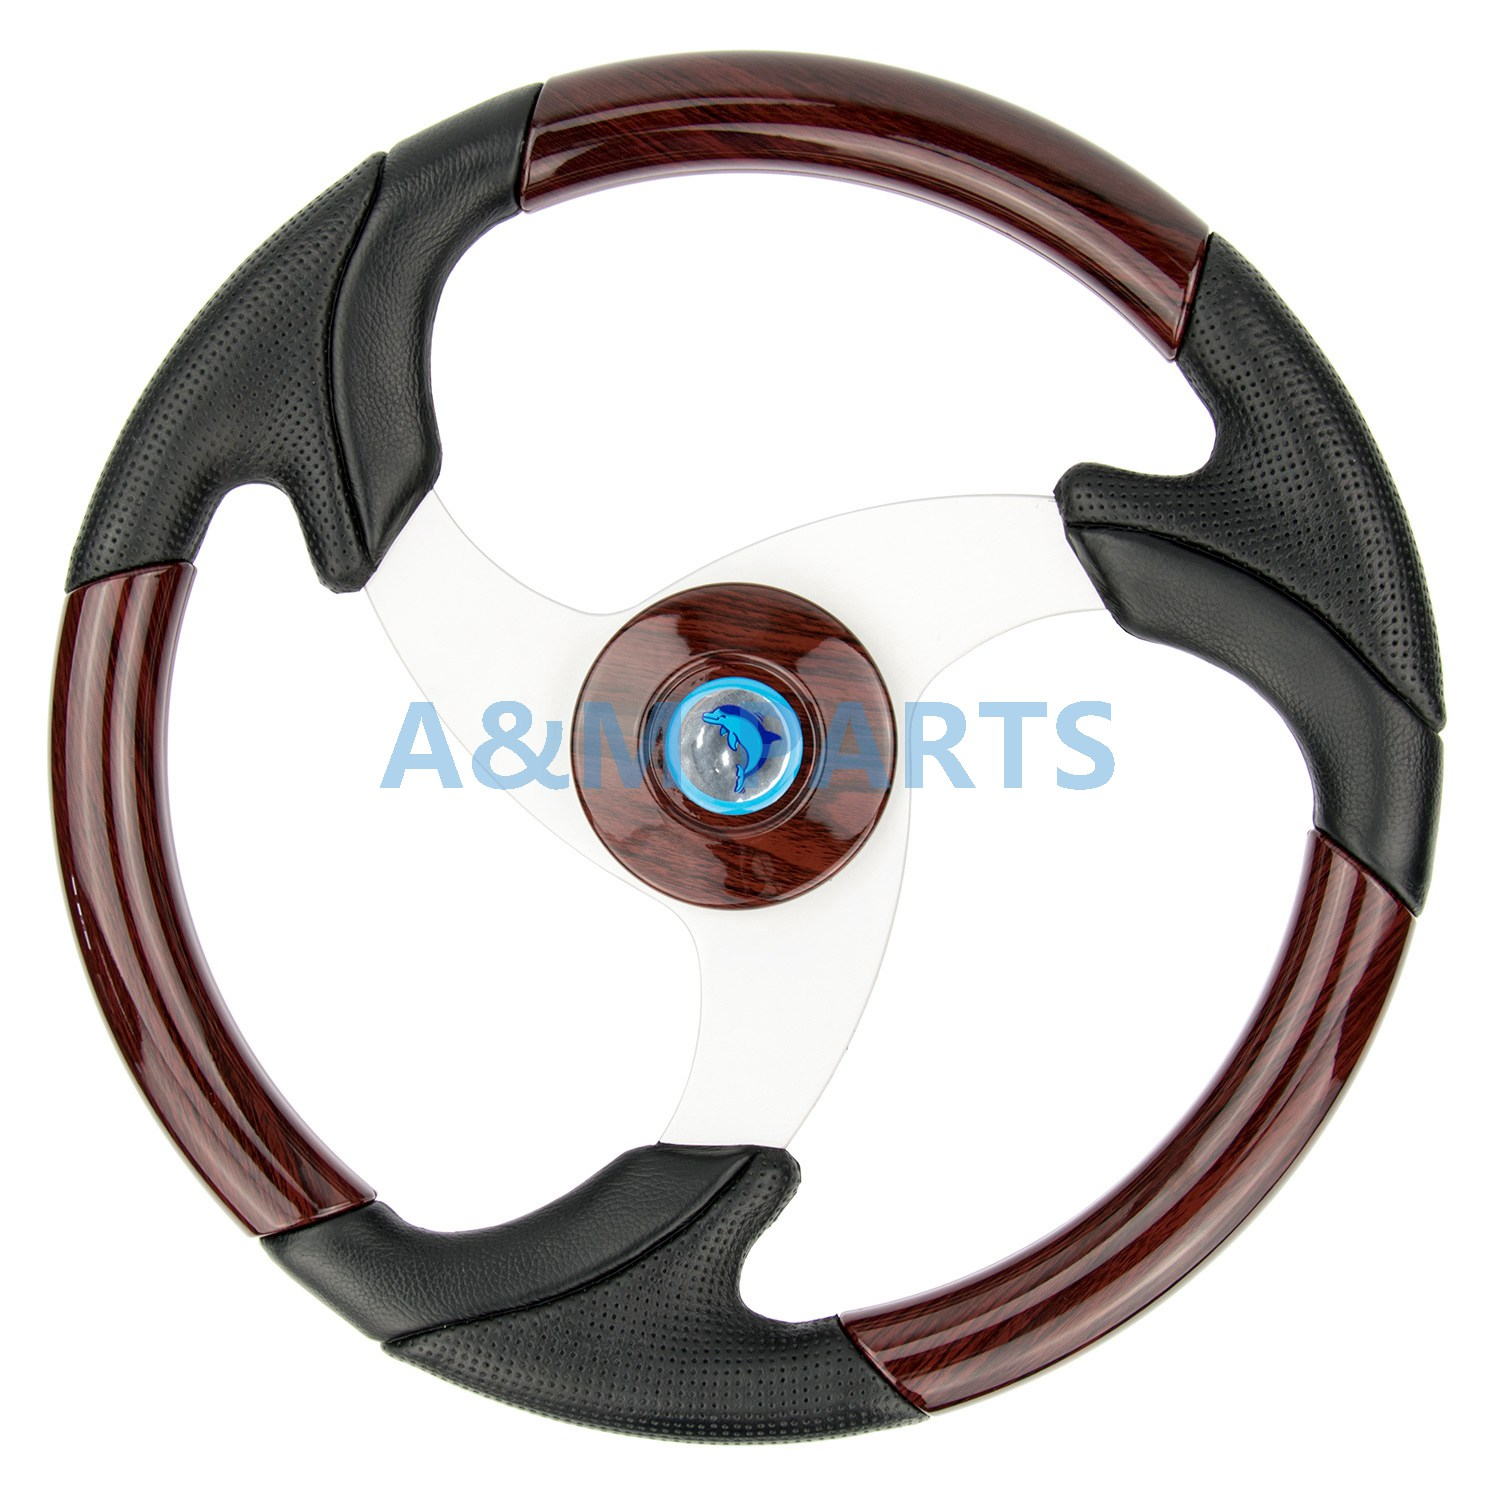 Boat Classic Steering Wheel Wood Grain Wheel Aluminum Spoke W/ Leather 13.5 247 classic leather